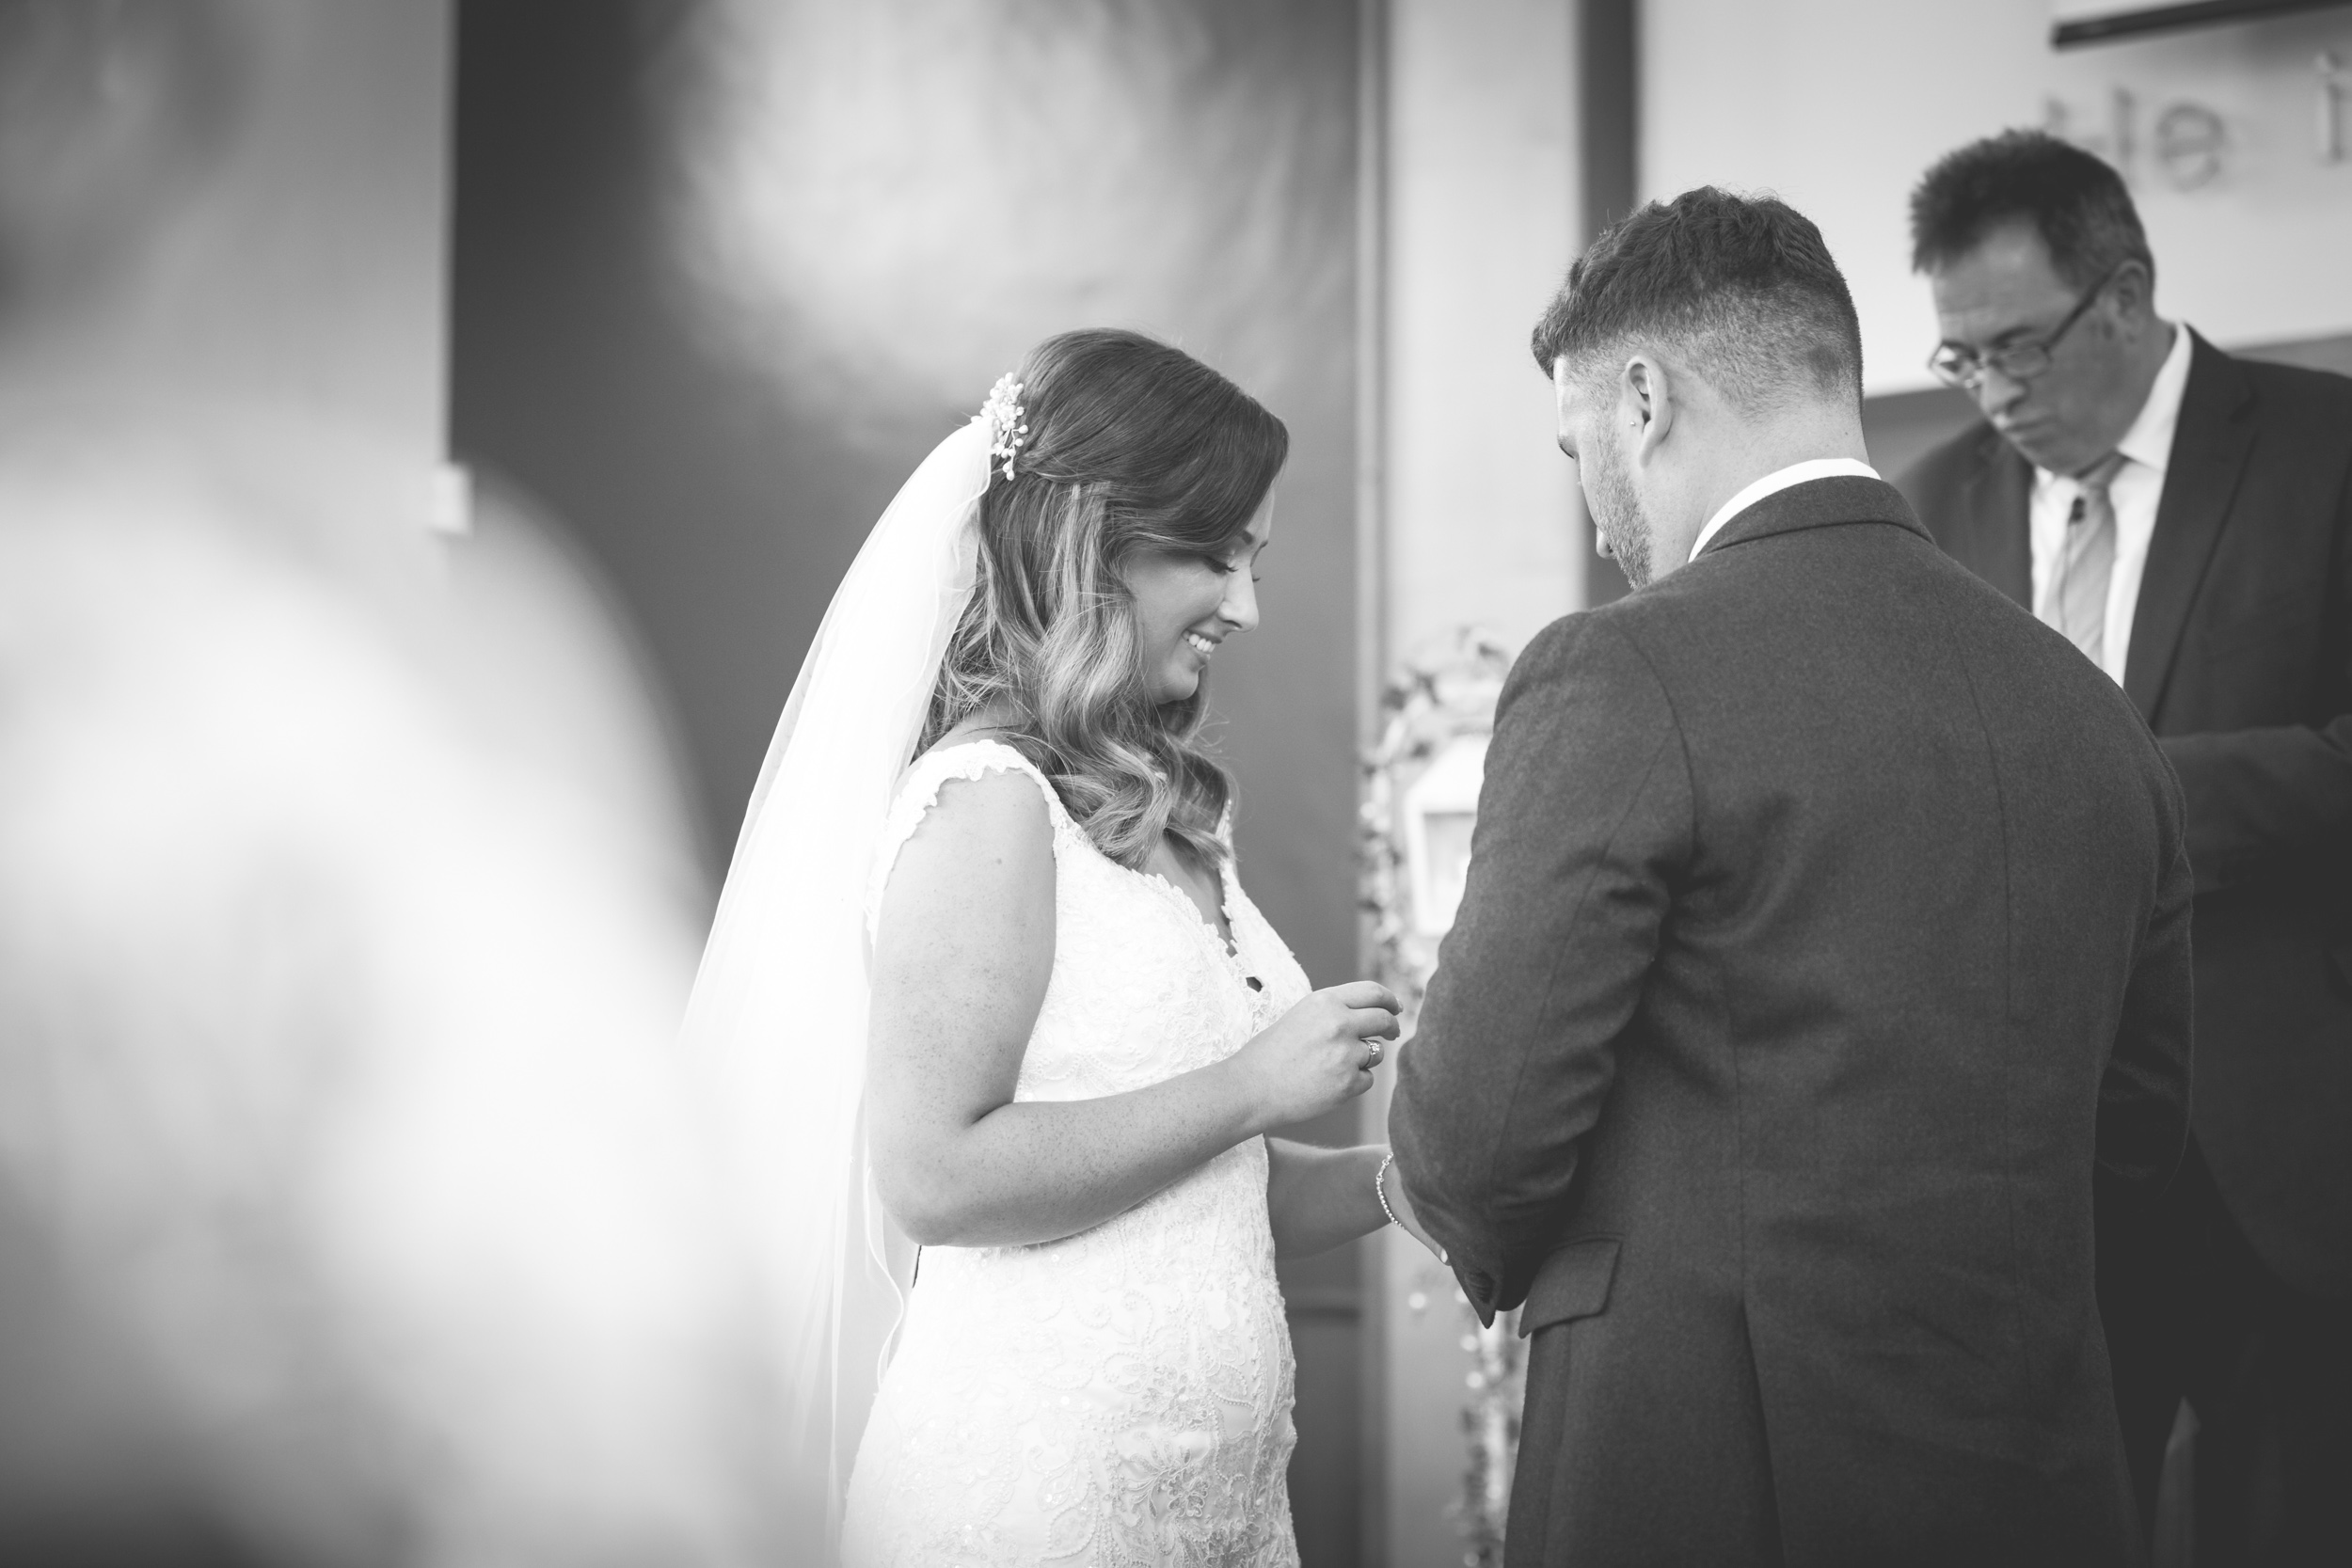 Brian McEwan | Northern Ireland Wedding Photographer | Rebecca & Michael | Ceremony-74.jpg